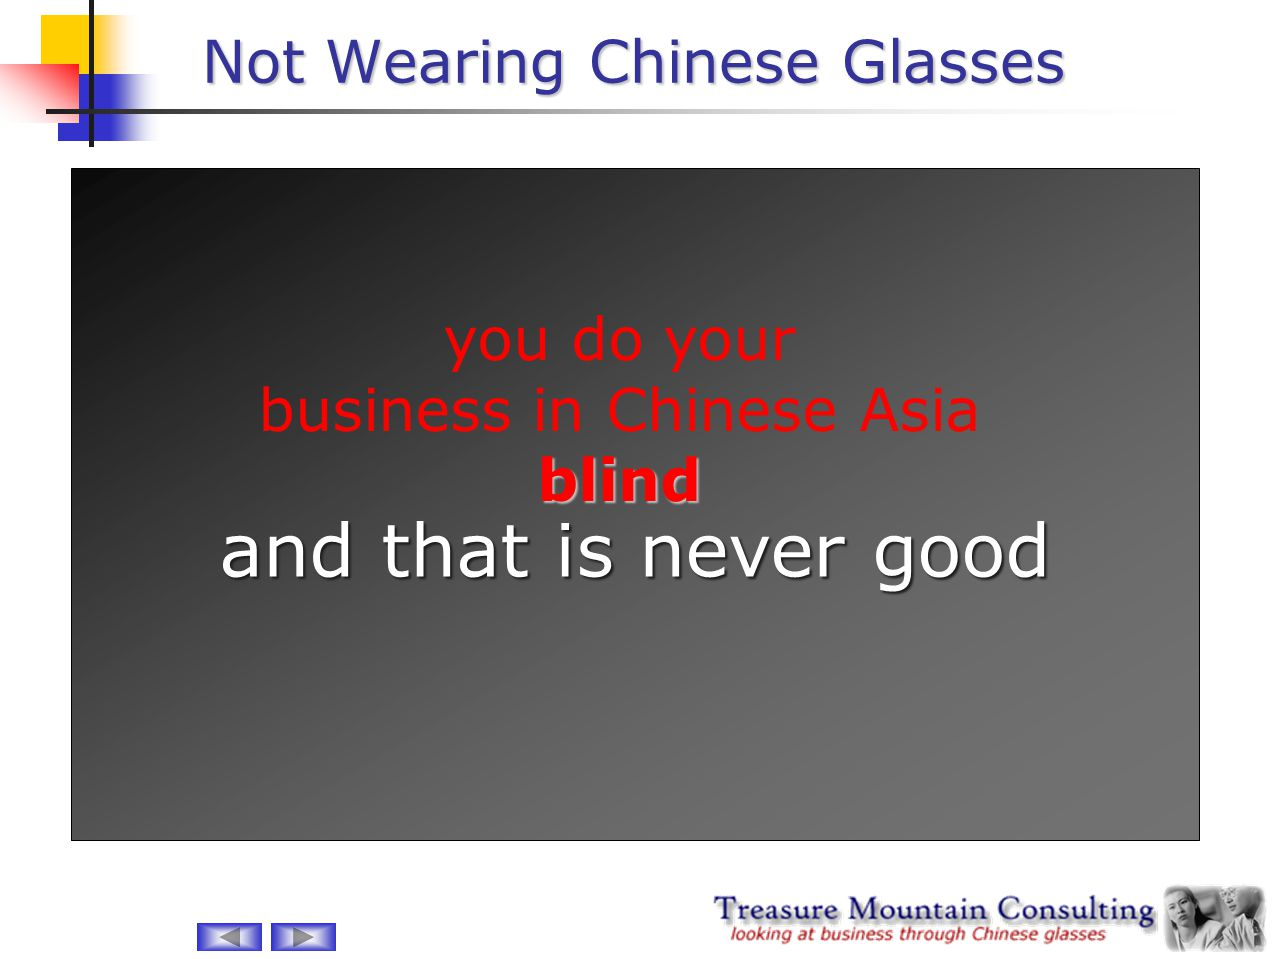 Not Wearing Chinese Glasses